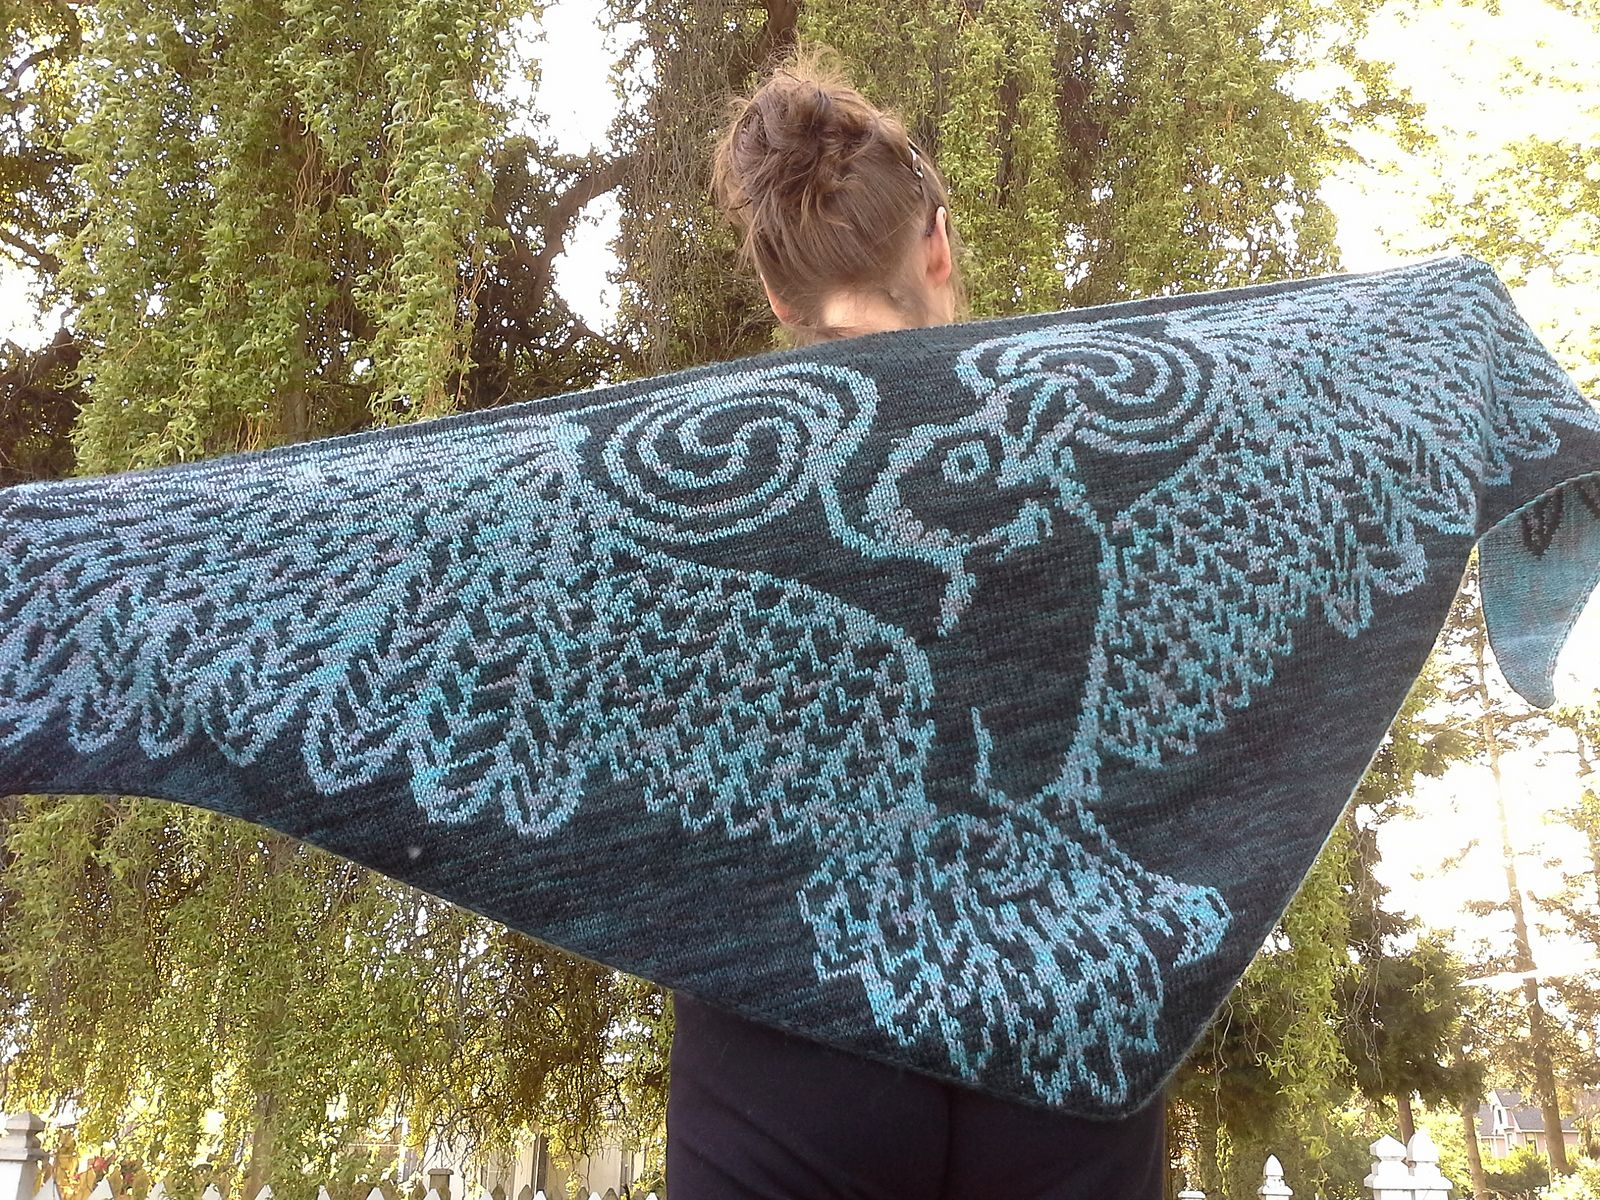 Thought and memory celtic raven pattern by tania richter ravelry thought and memory celtic raven pattern by tania richter bankloansurffo Choice Image